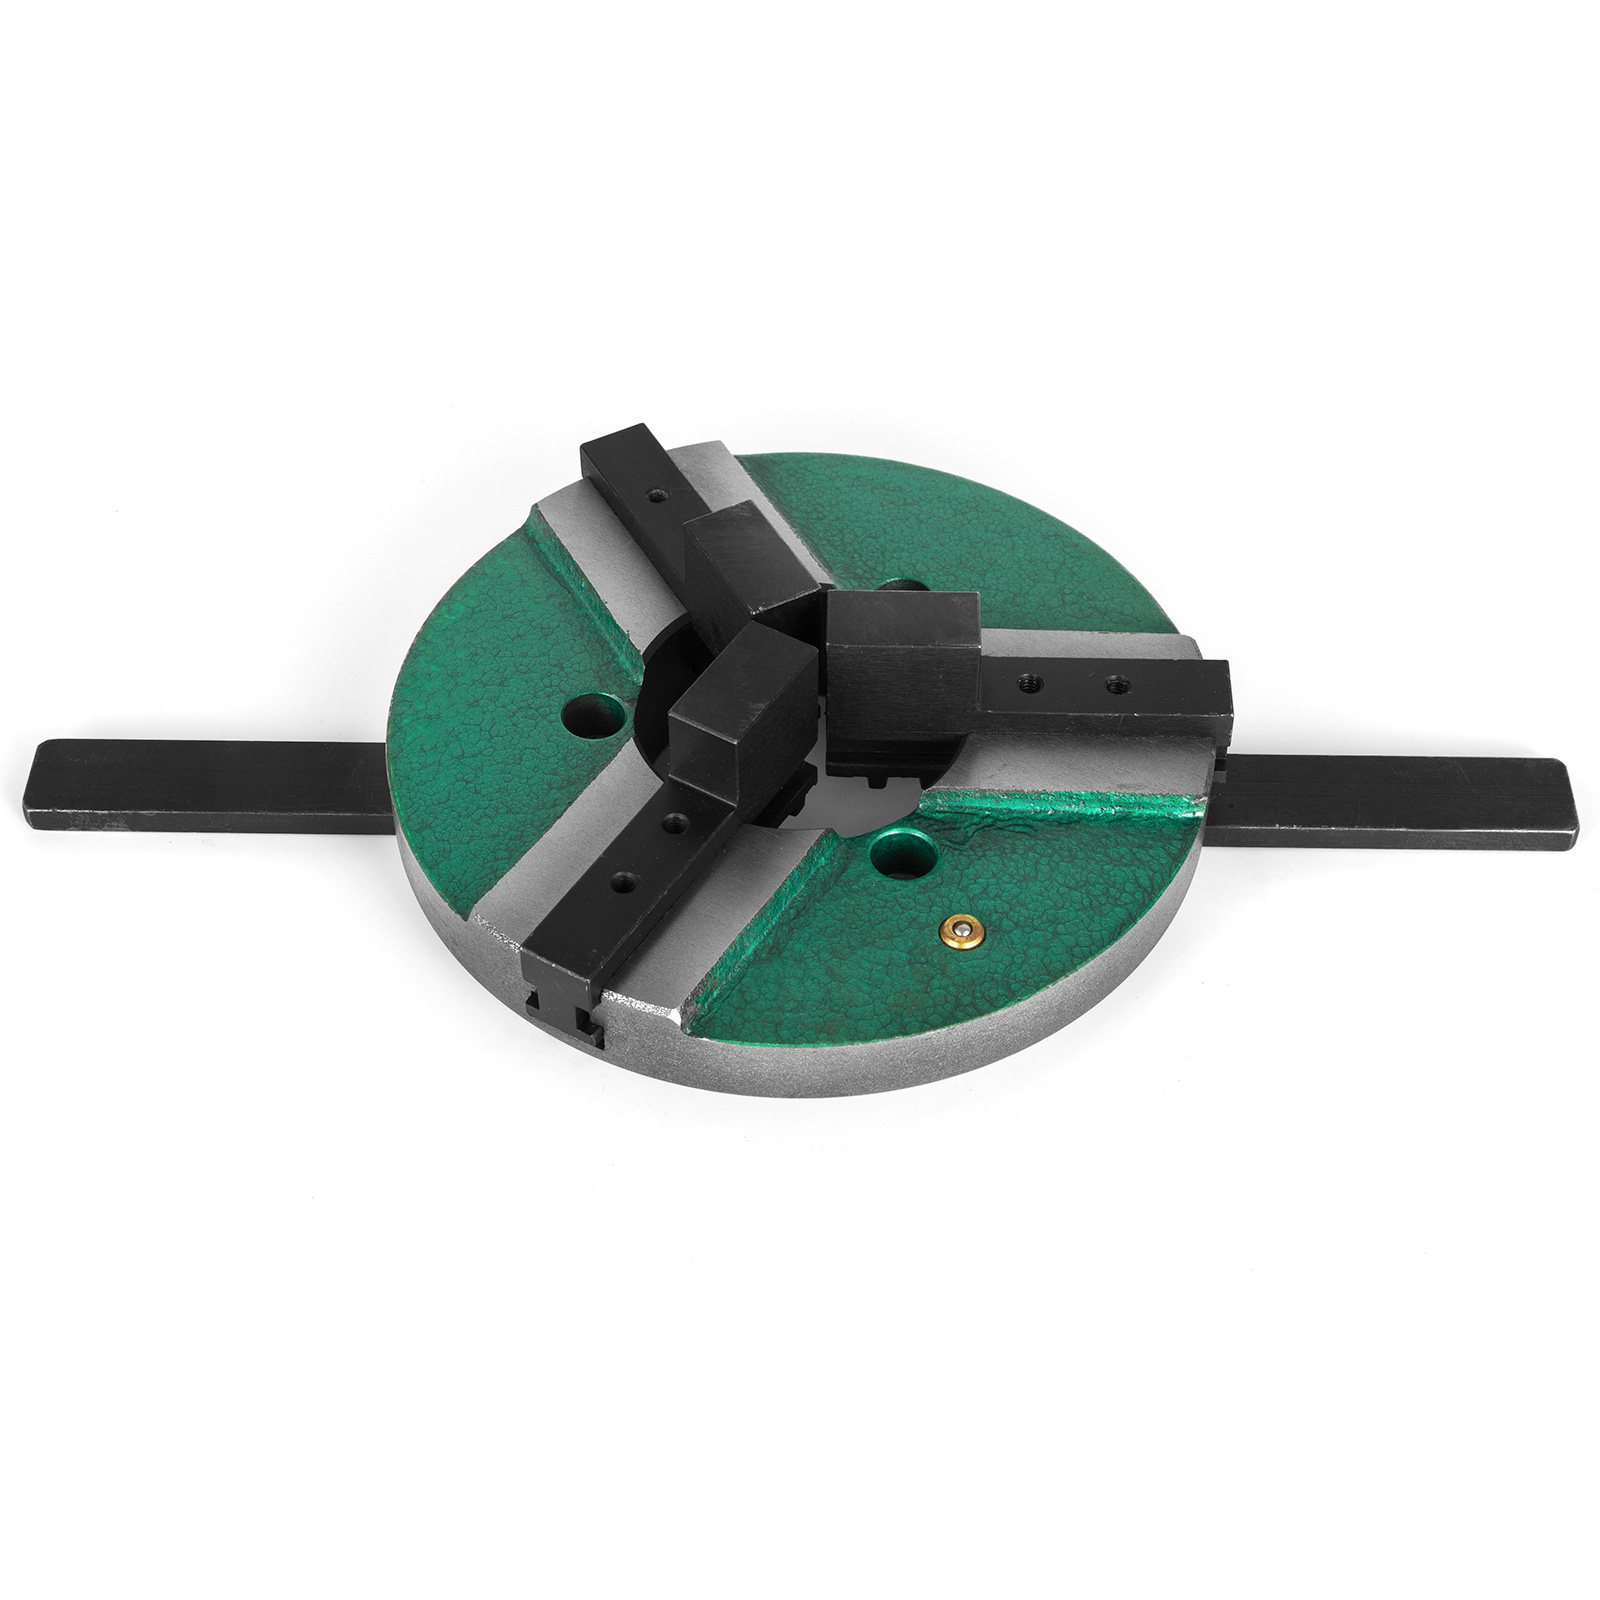 3-Jaw-Table-Chuck-Reversible-WP-200-WP-300-Clamping-Self-Centering-Welding thumbnail 15